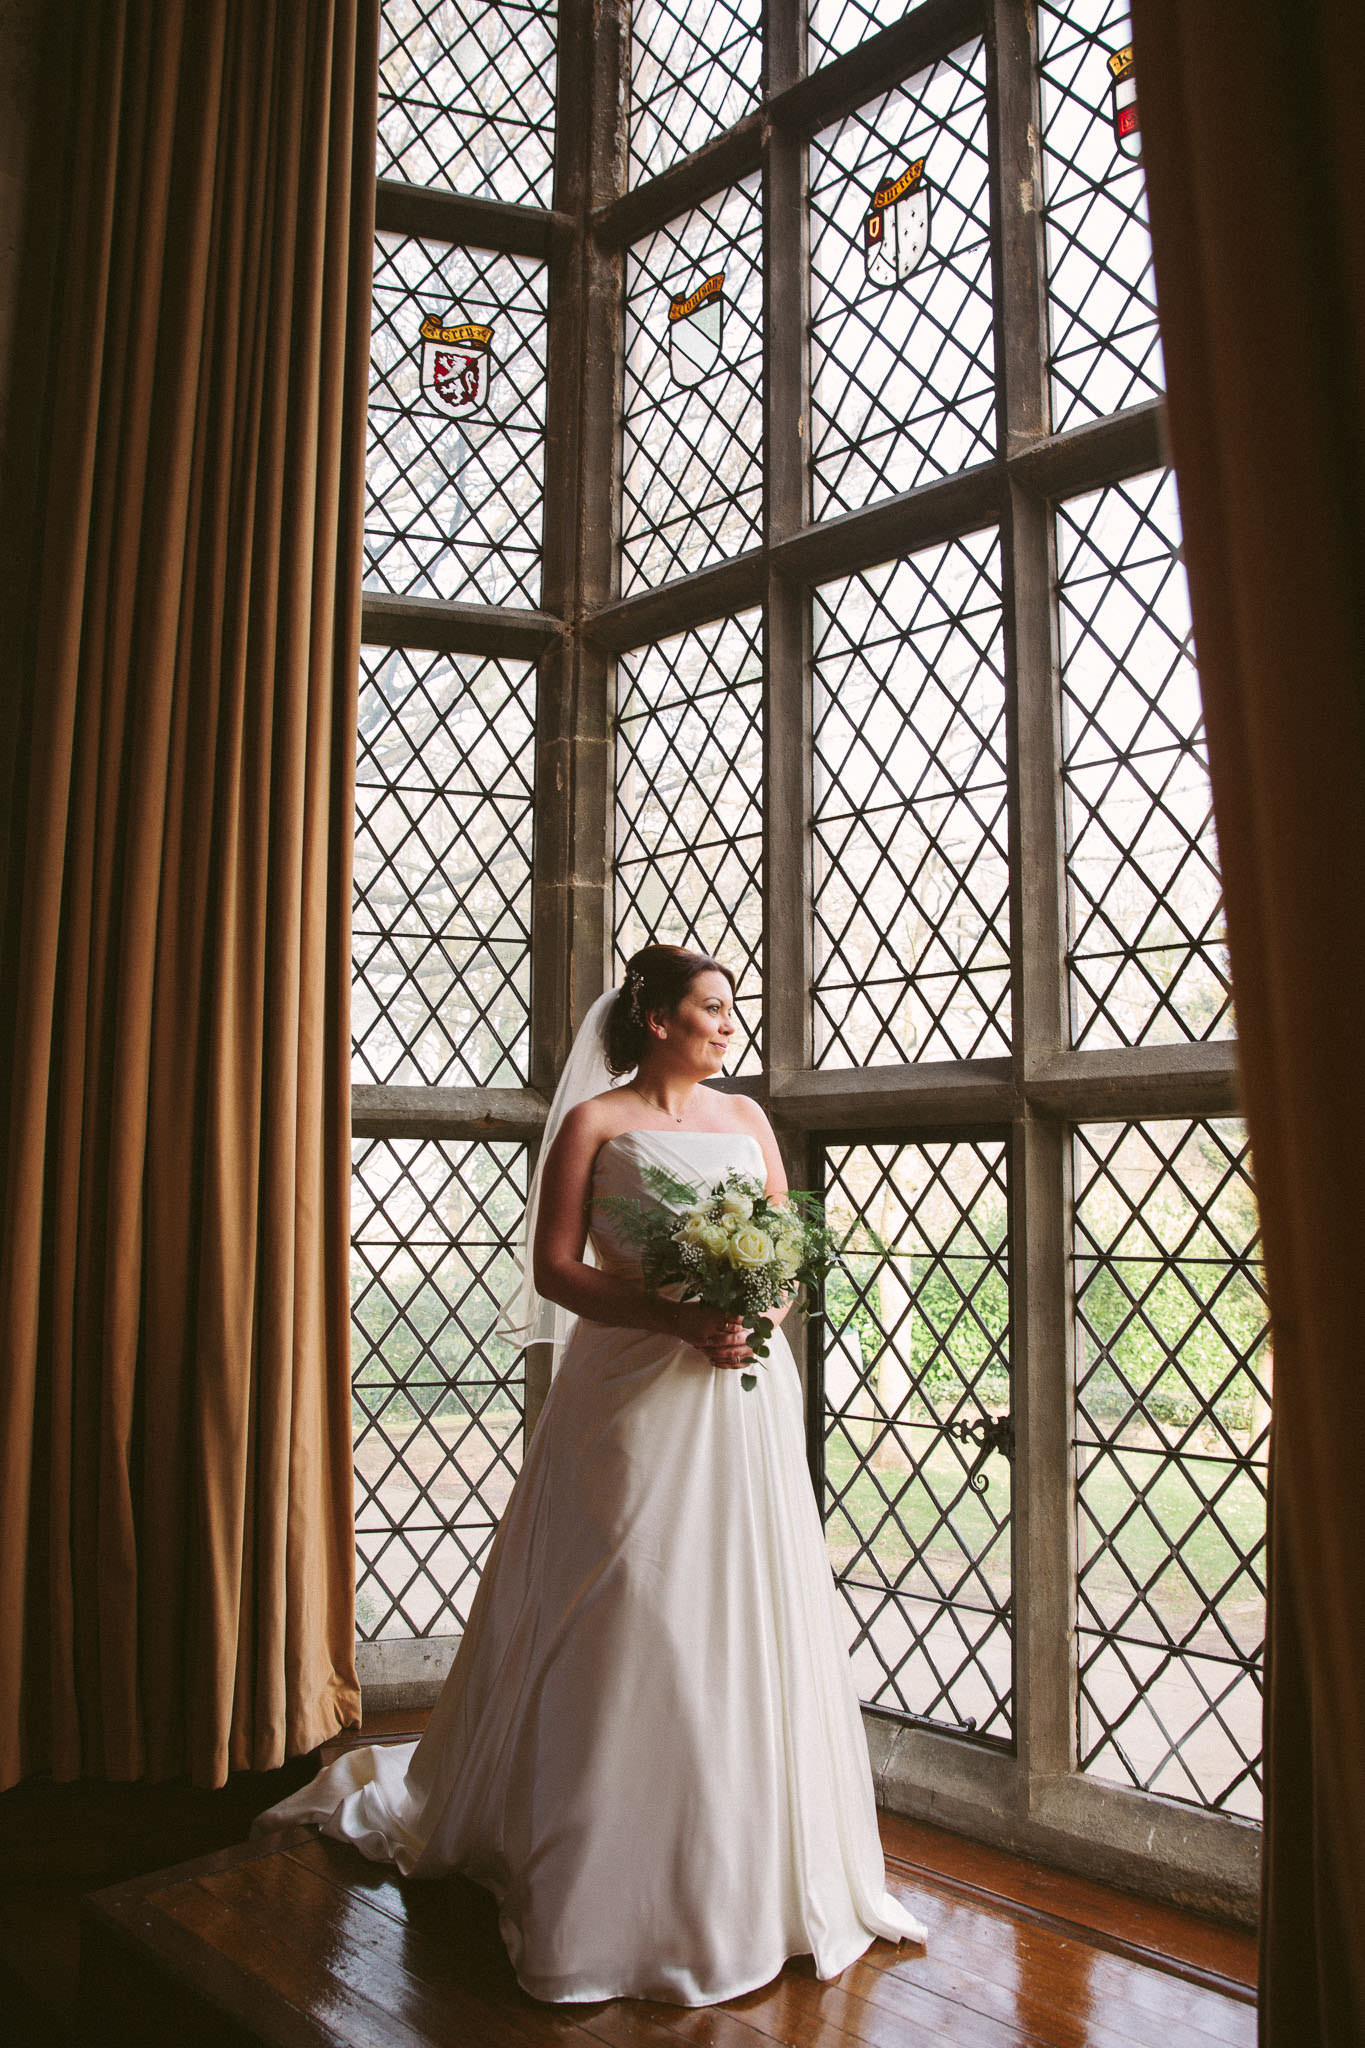 Lynne in the window of the Great Hall at Redworth Hall in Durham